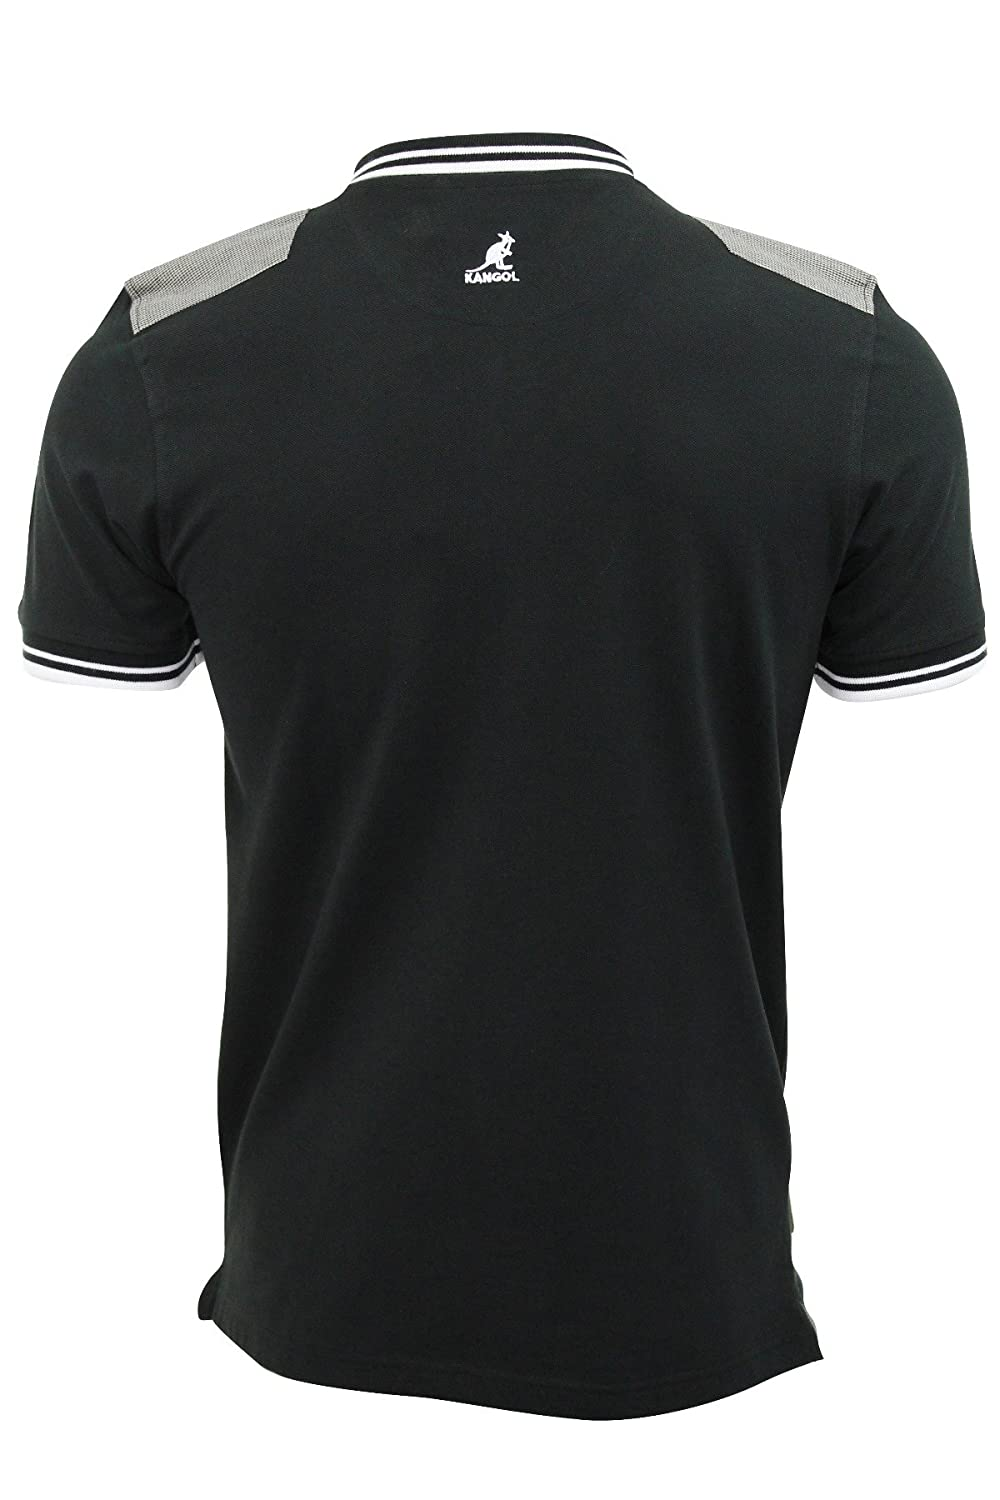 Kangol - Polo - para Hombre Winch (Black) Small: Amazon.es: Ropa y ...